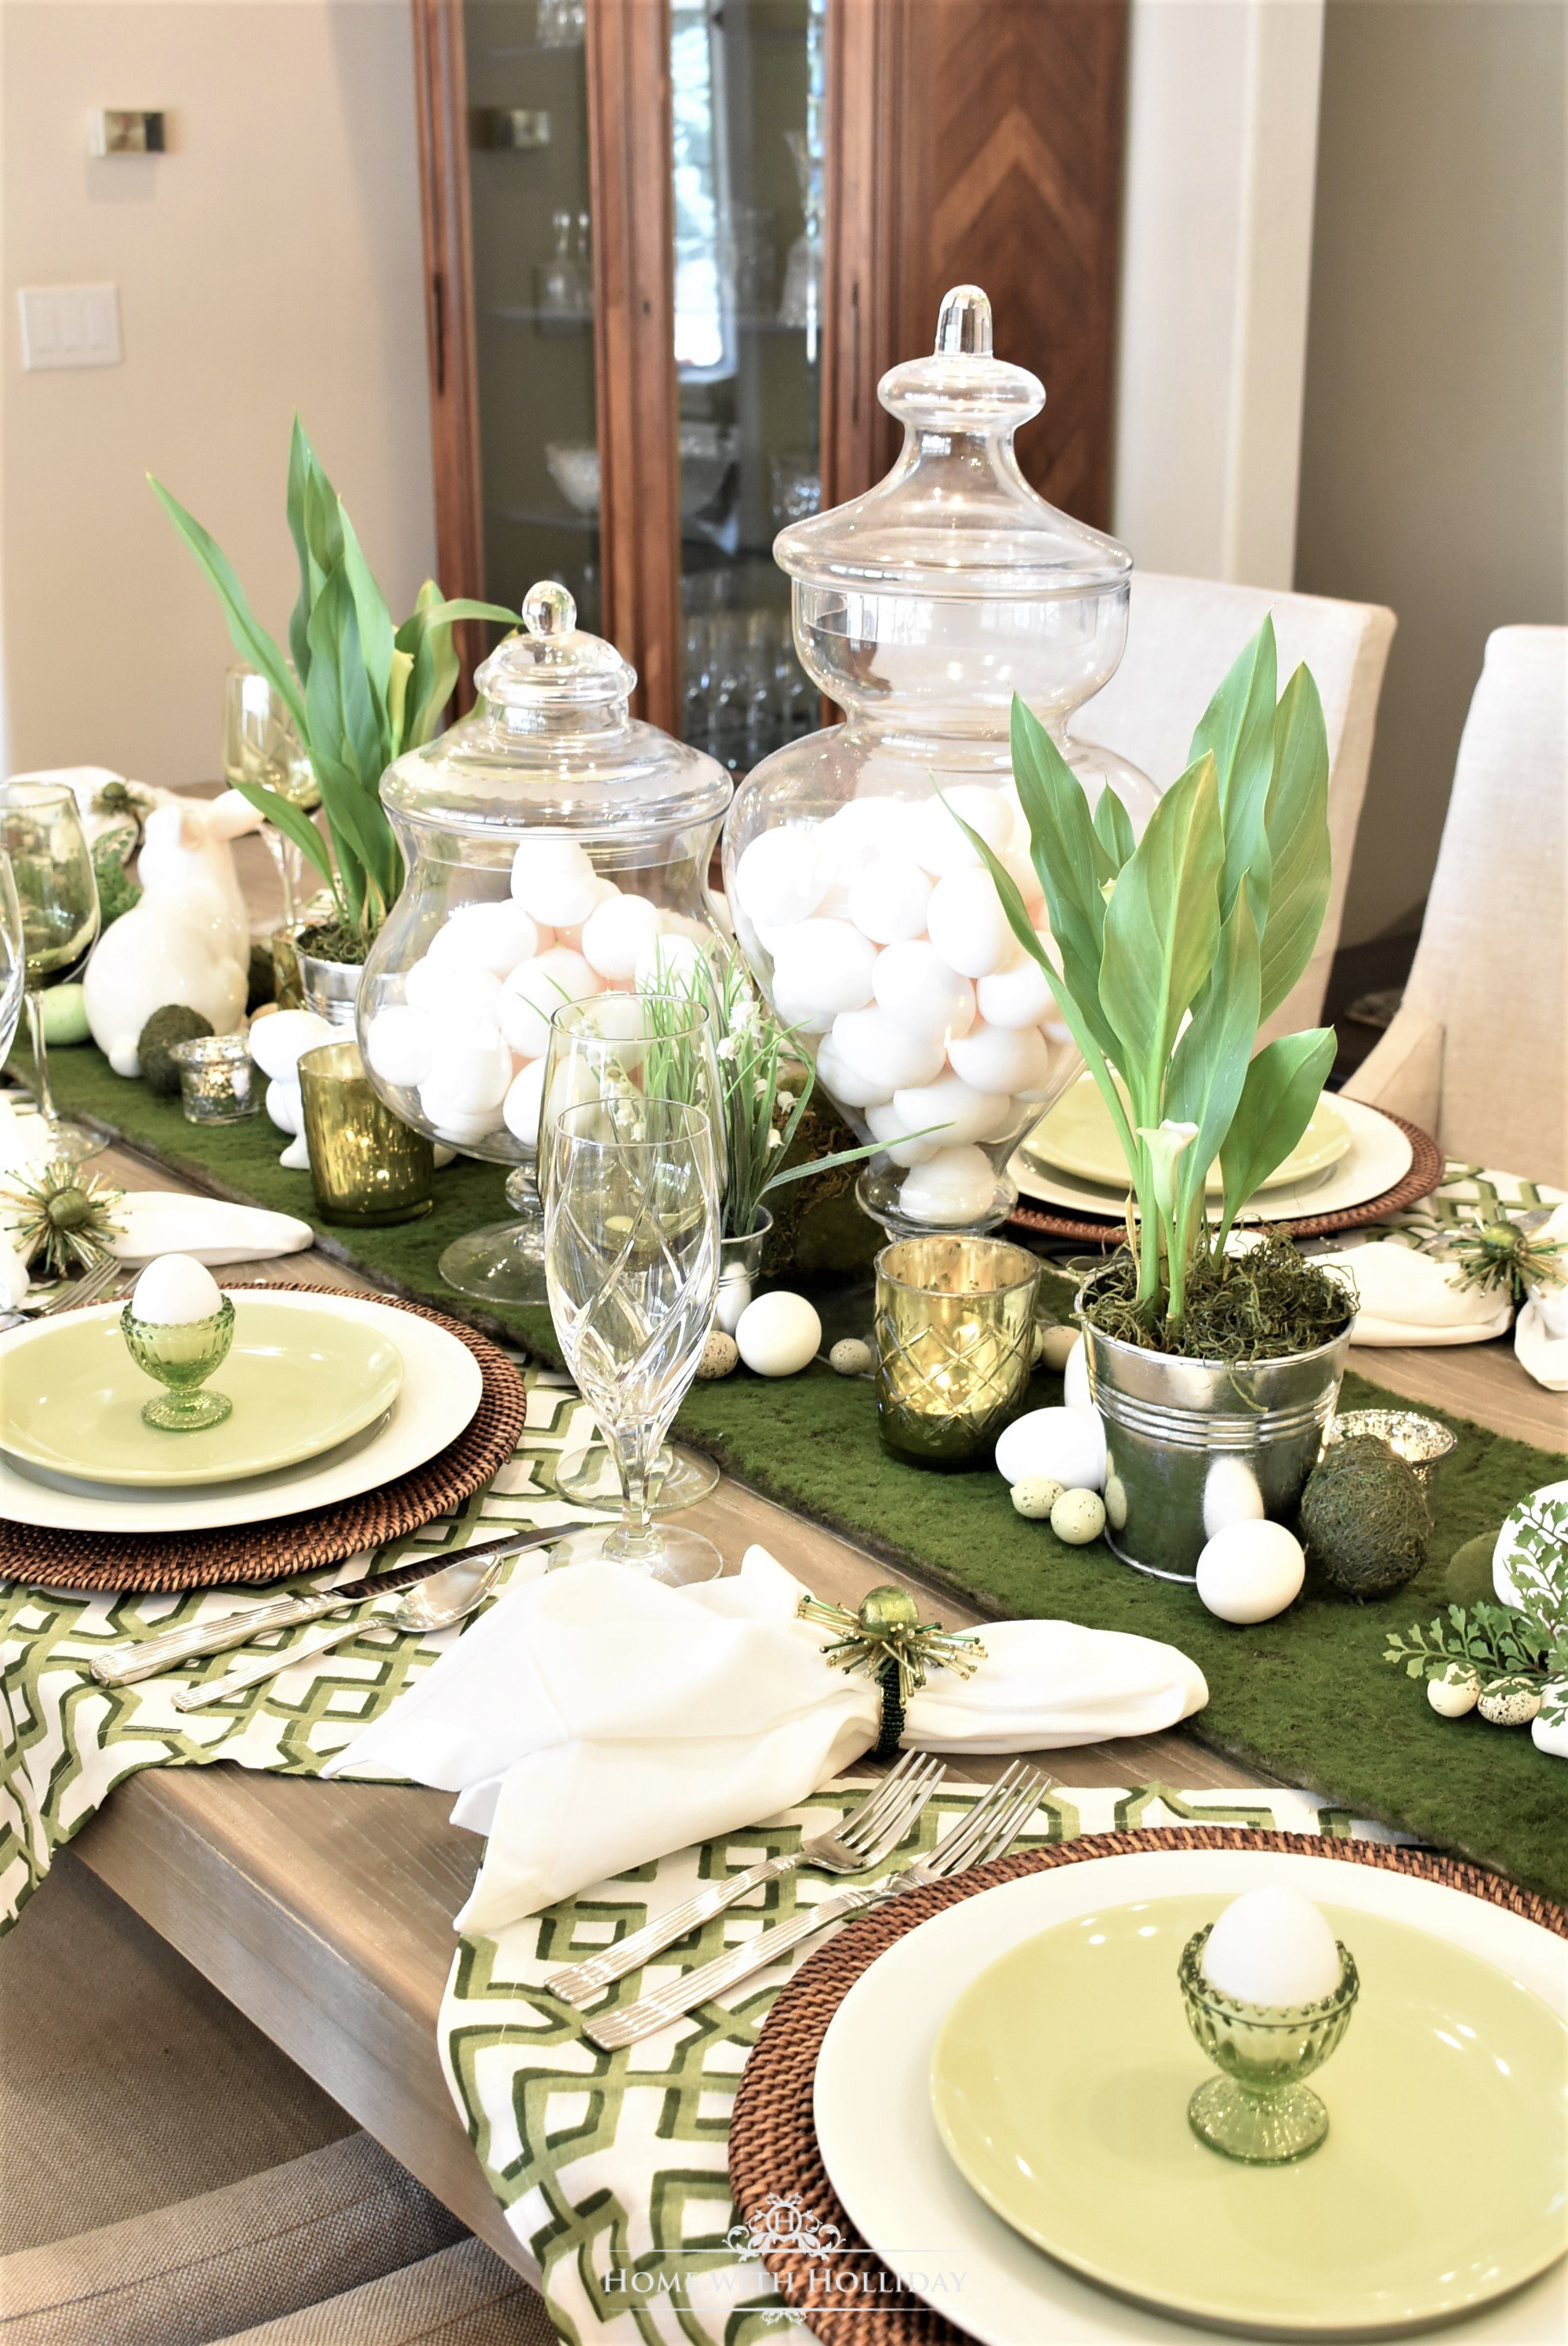 Green and White Easter Table Setting - Home with Holliday